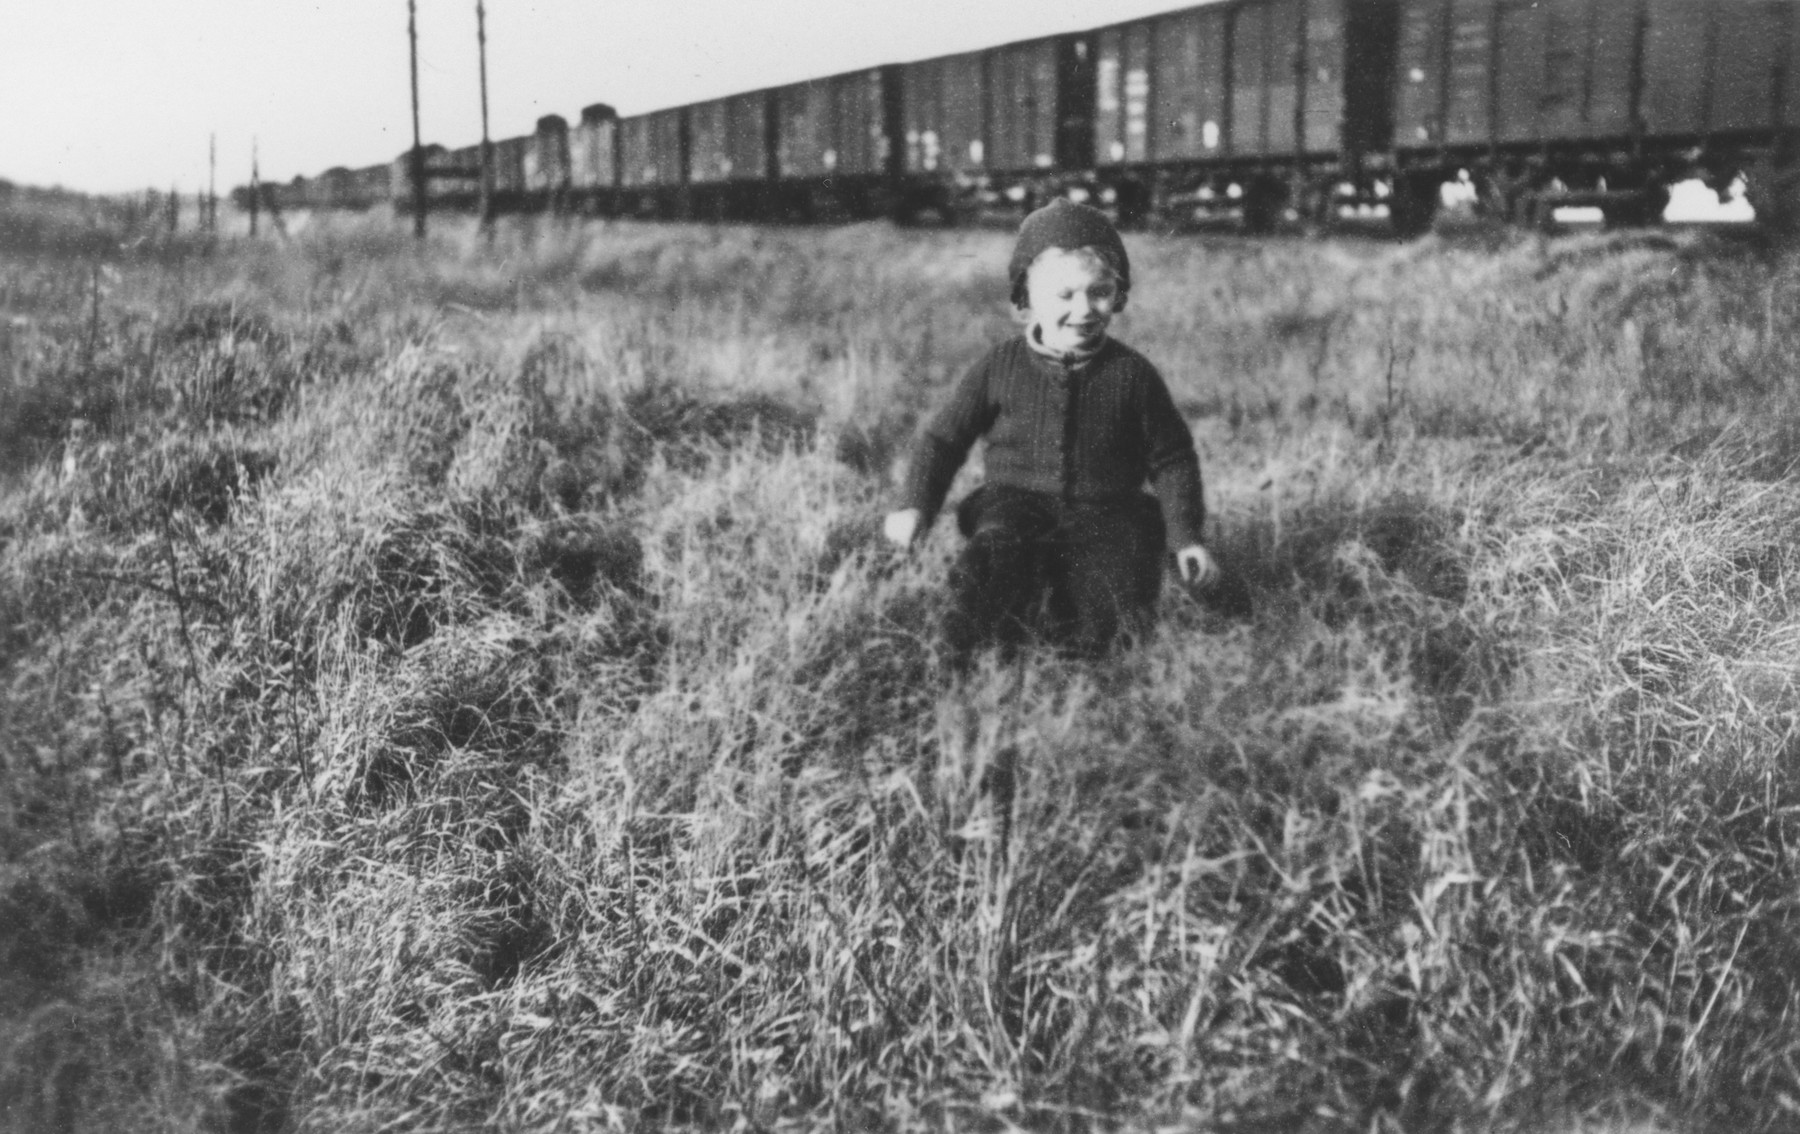 A child runs through the grass in front of a freight train.  [The child may be the visiting son or daughter of a member of Police Battalion 101]   One image from a photograph album belonging to a member of Police Battalion 101.